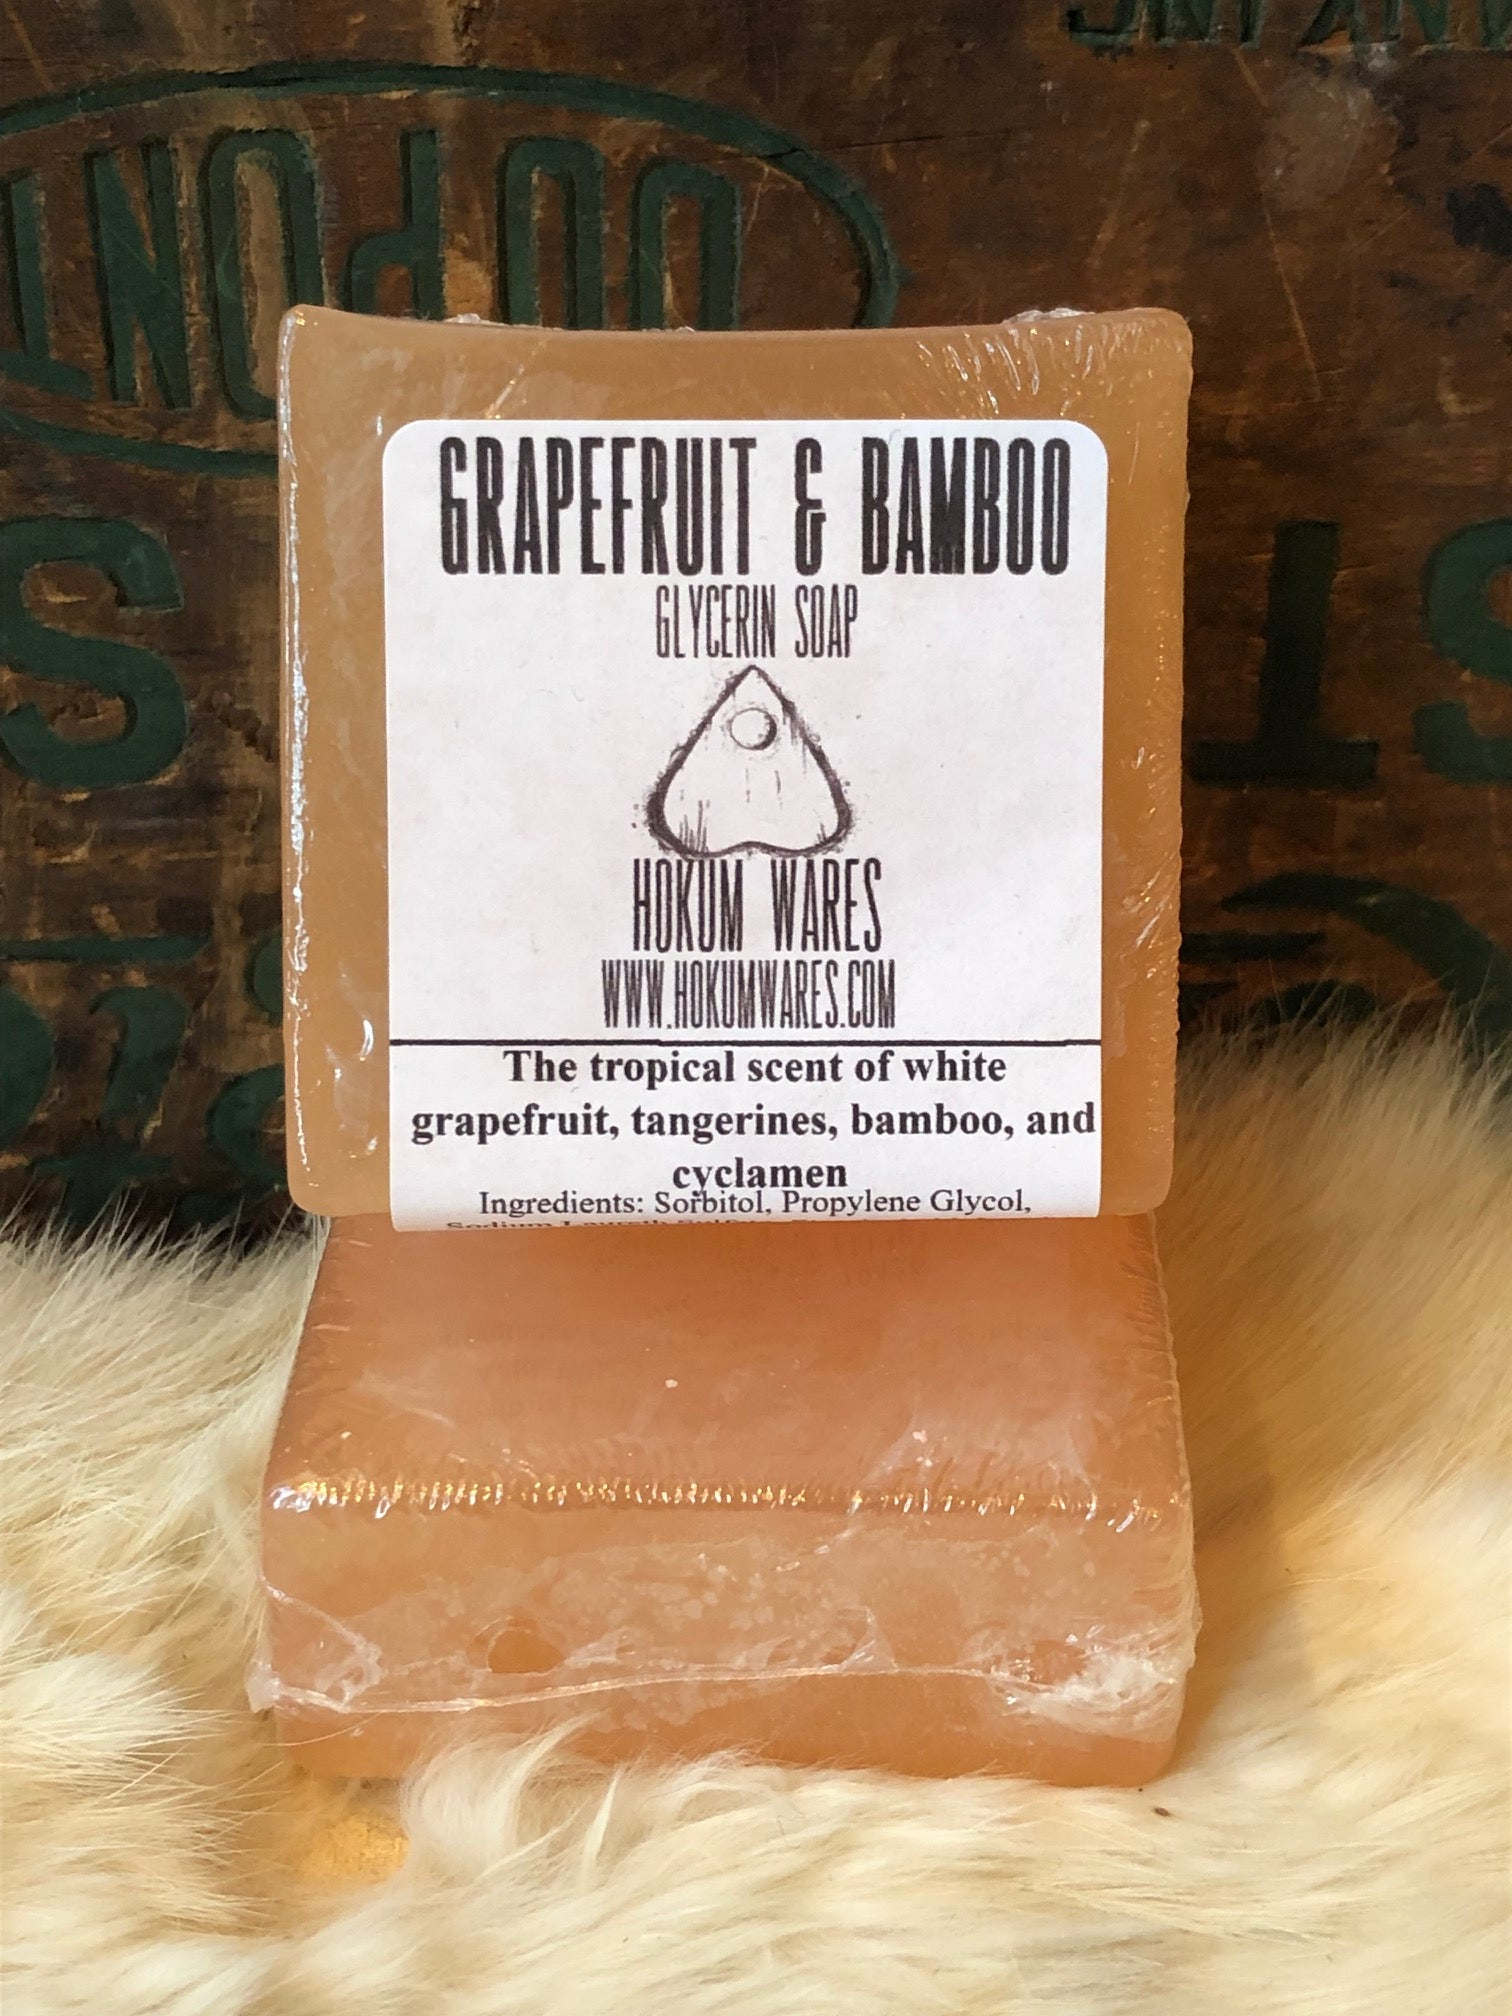 Hokum Wares Glycerin Soap in Grapefruit and Bamboo